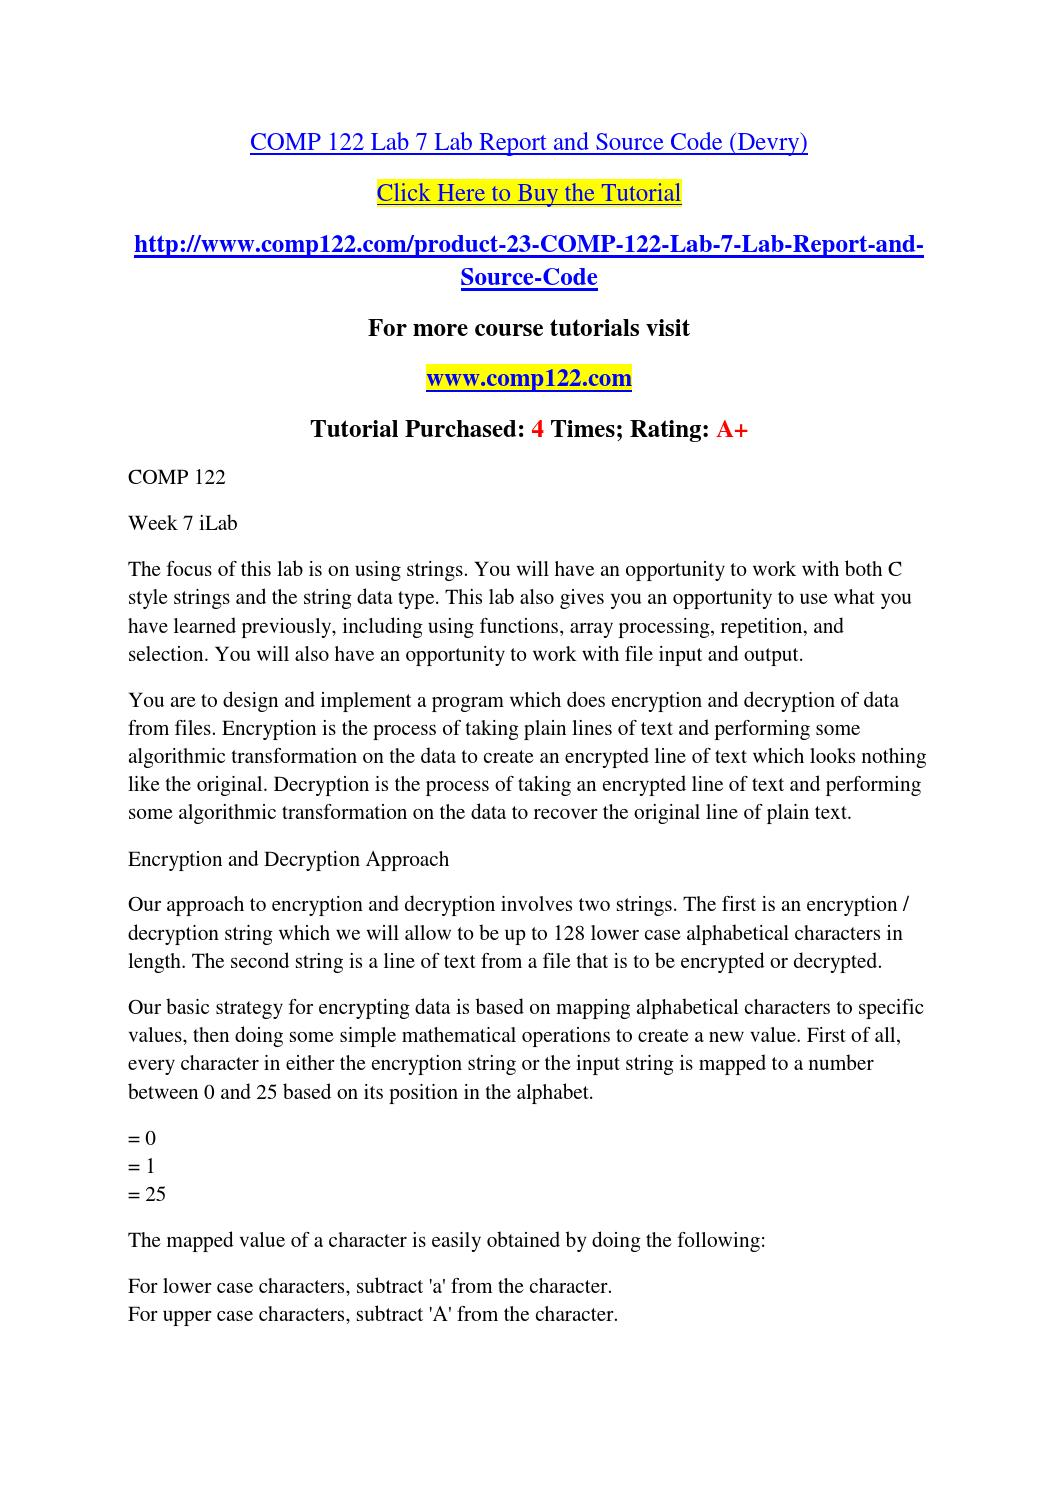 Comp 122 lab 7 lab report and source code (devry)